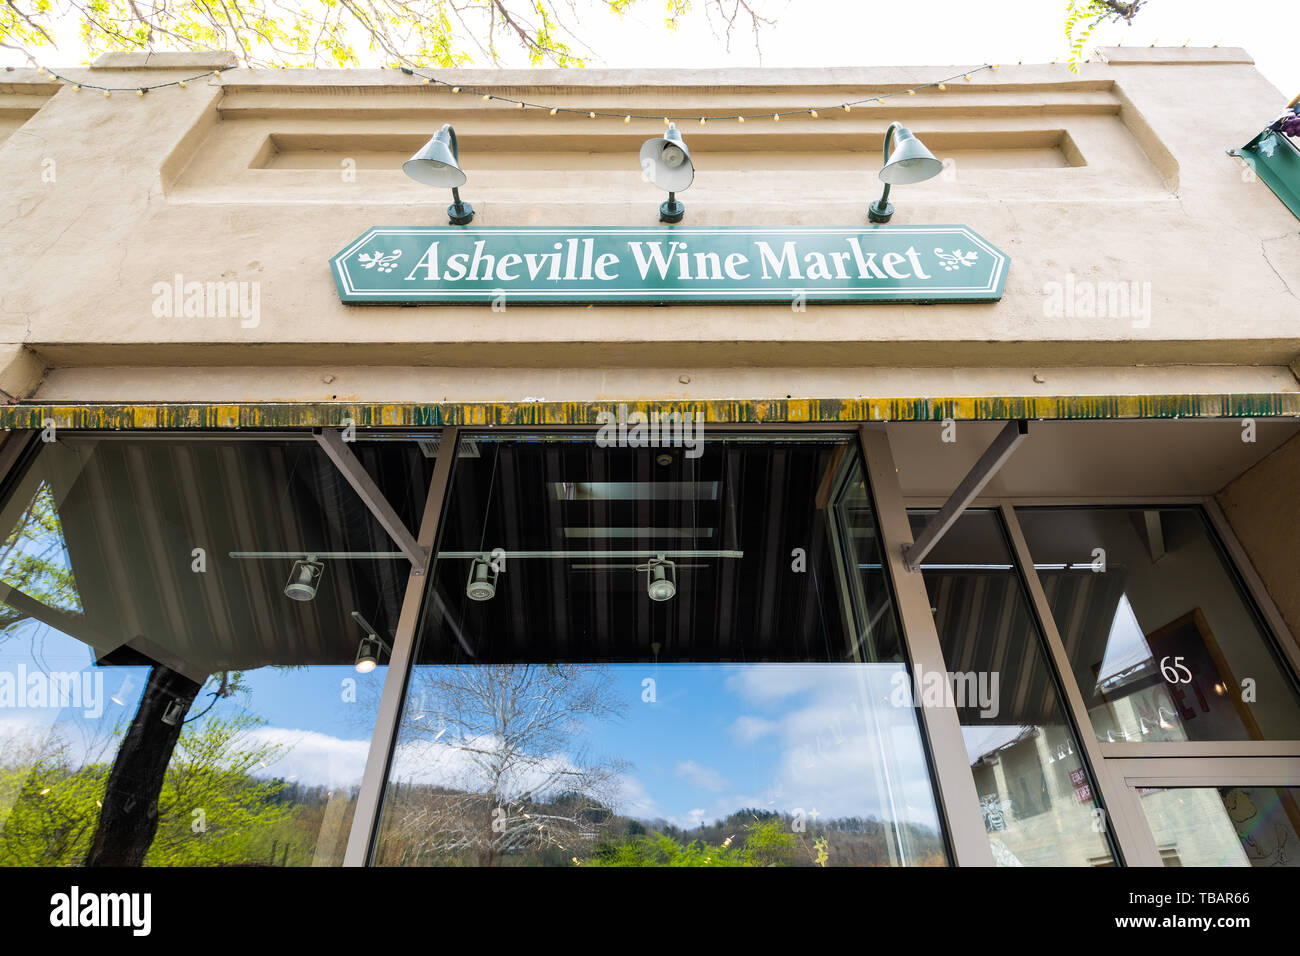 Asheville, USA - April 19, 2018: Downtown old town street in hipster North Carolina NC famous town with sign on building for Wine Market - Stock Image